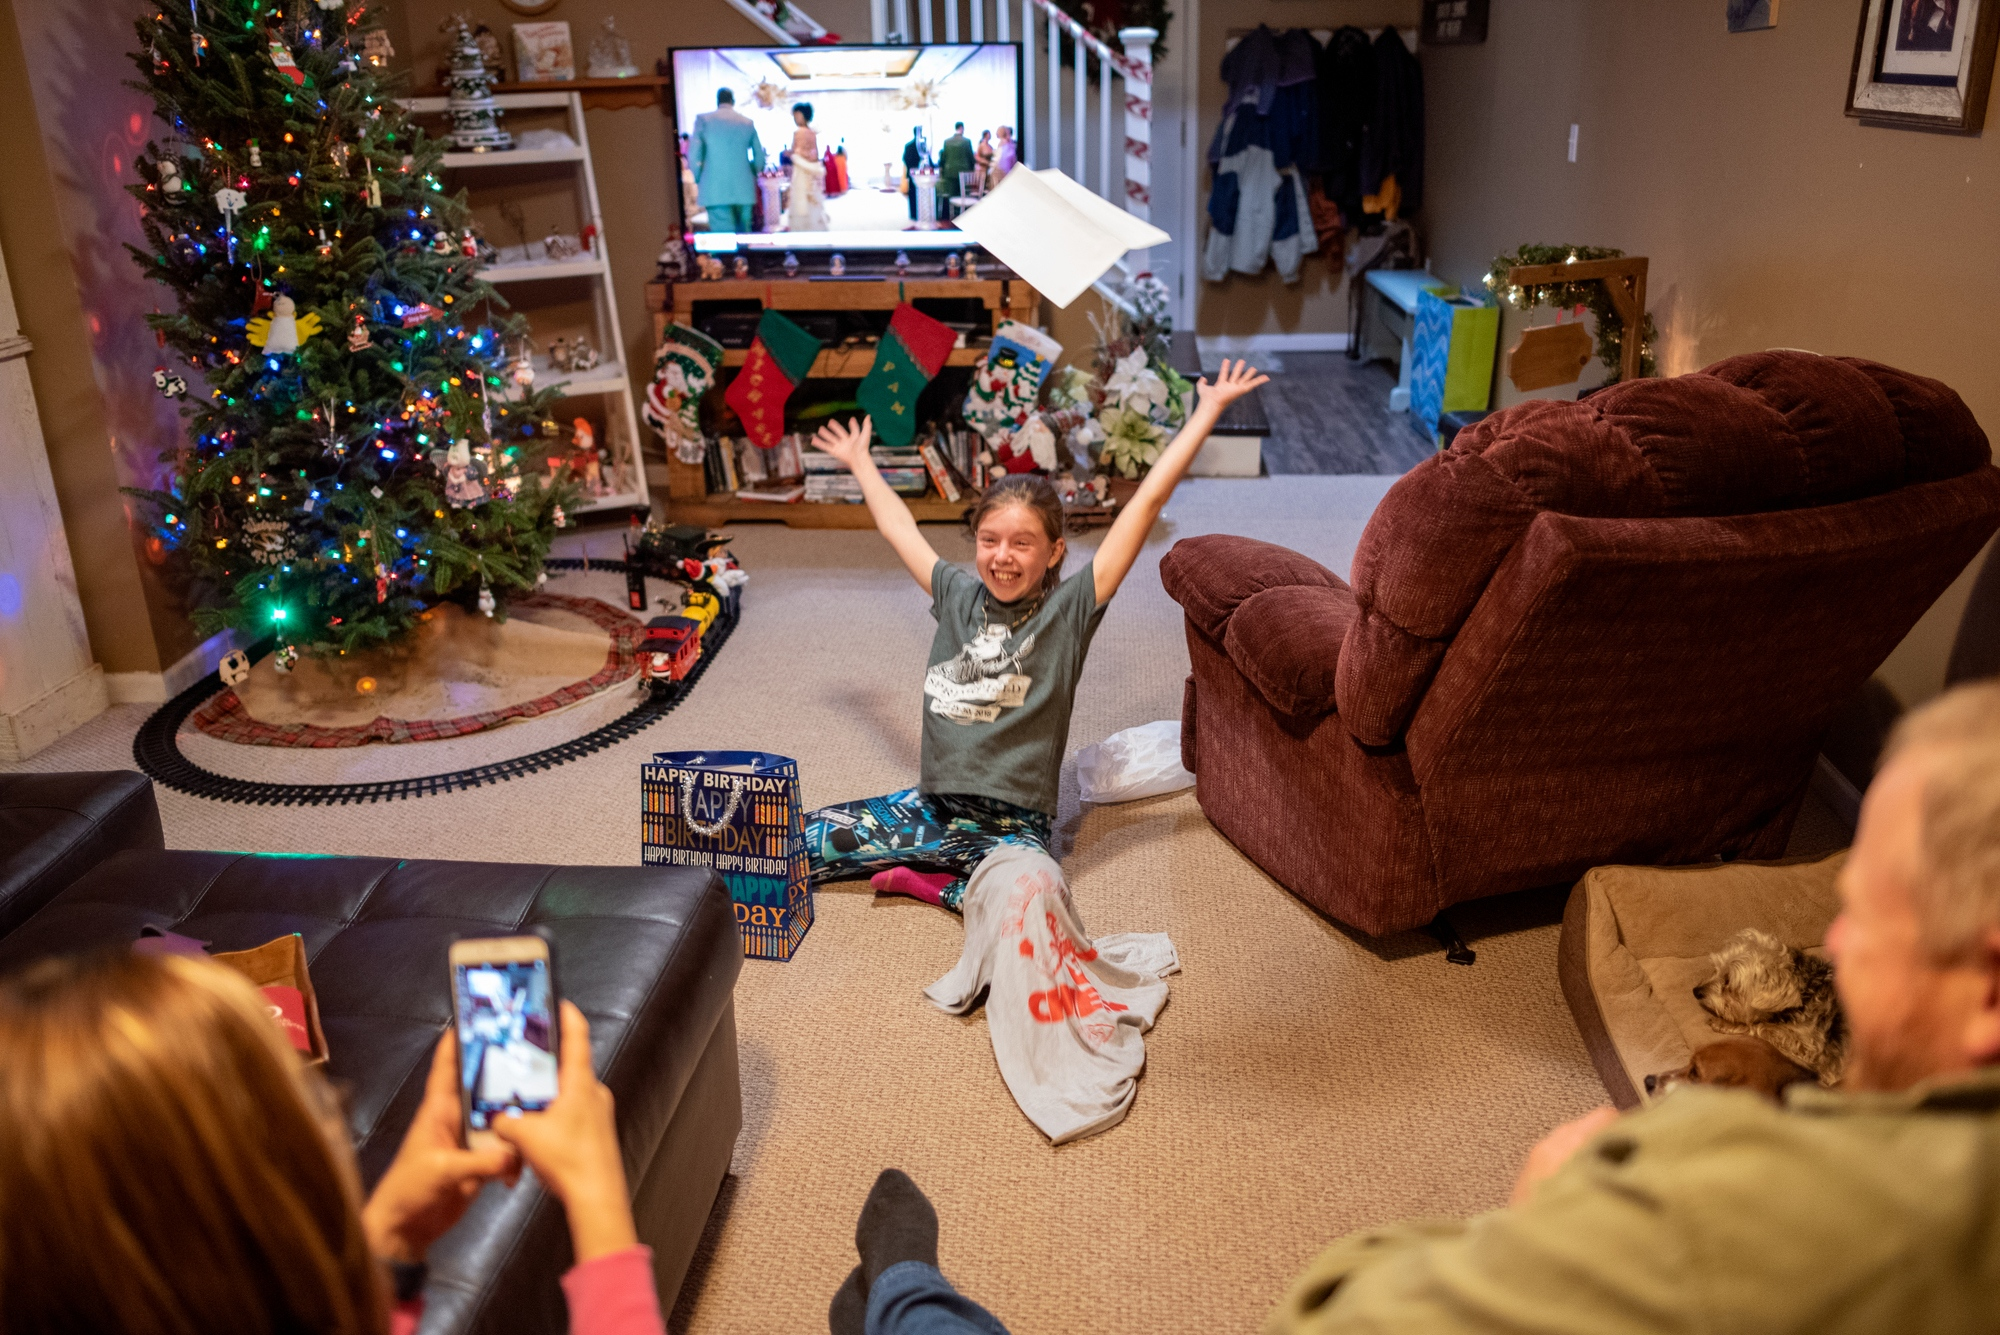 Callie Jennings tosses her birthday present, a ticket to country musician Kane Brown's concert, in the air in excitement on November 26, 2018 north of Columbia, Mo. Brown is Callie's favorite country music star.